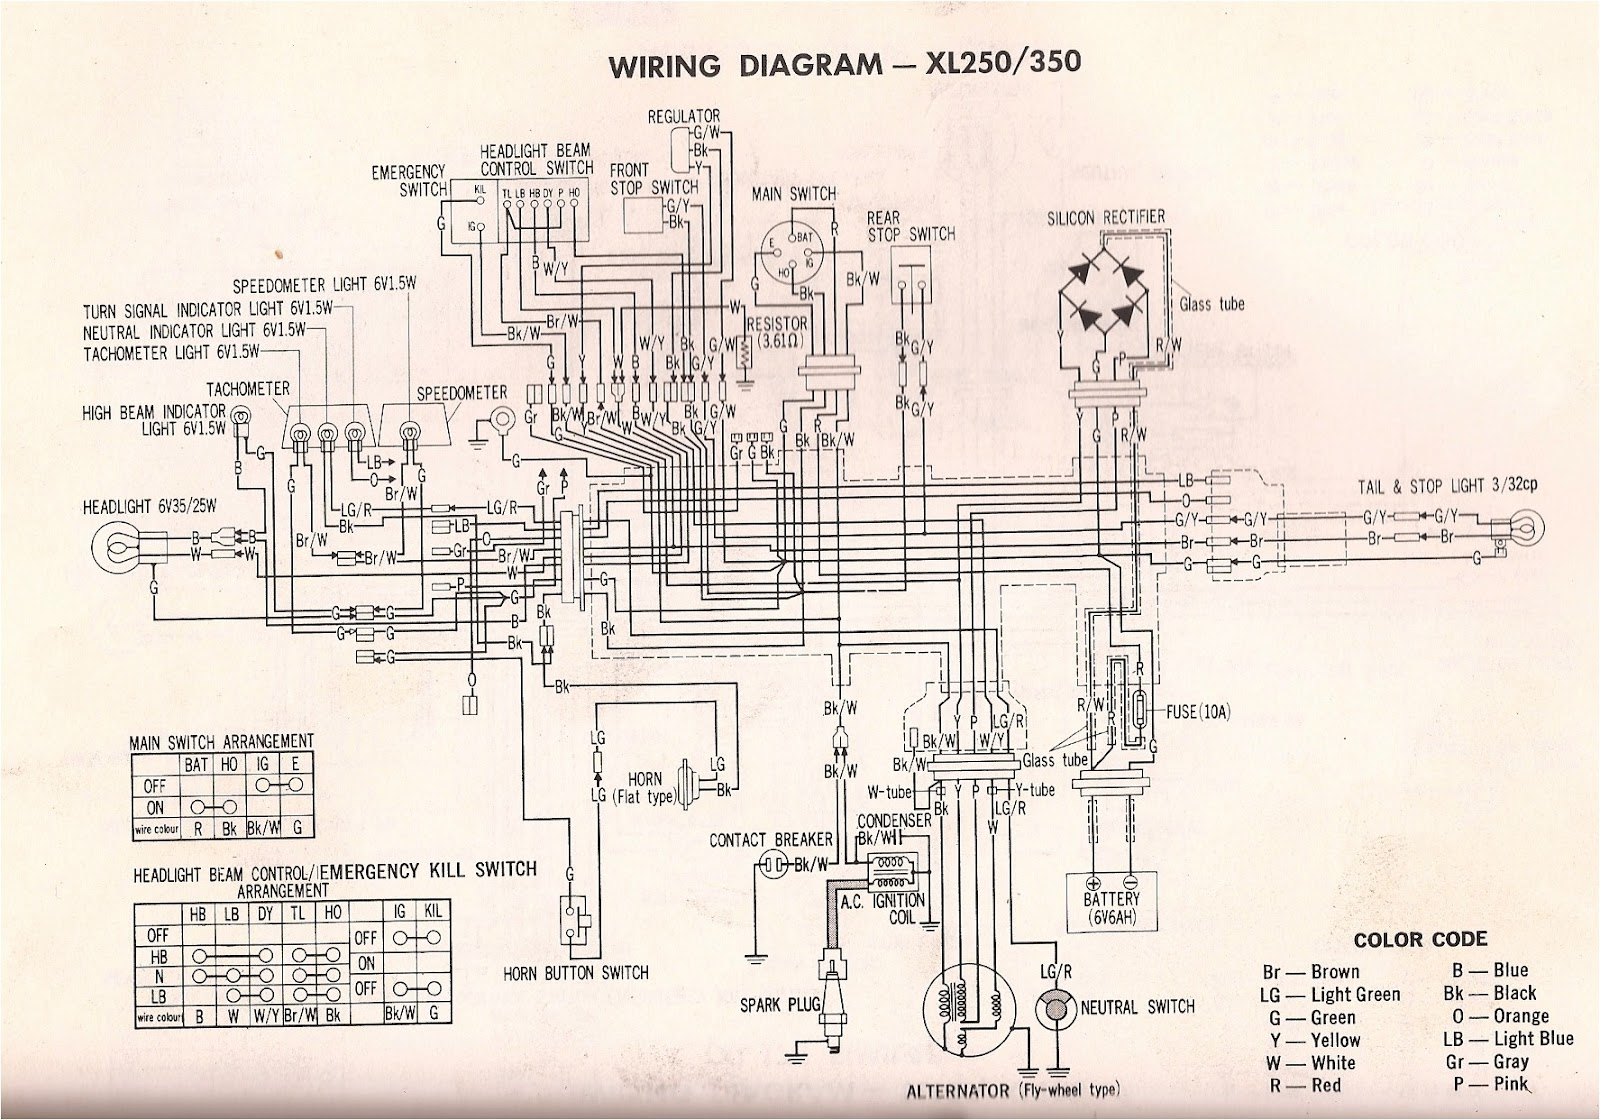 XL350+Wiring+diagram+S r4l xl350 wiring diagram (and xl250) 1974 honda cb360 wiring diagram at bakdesigns.co